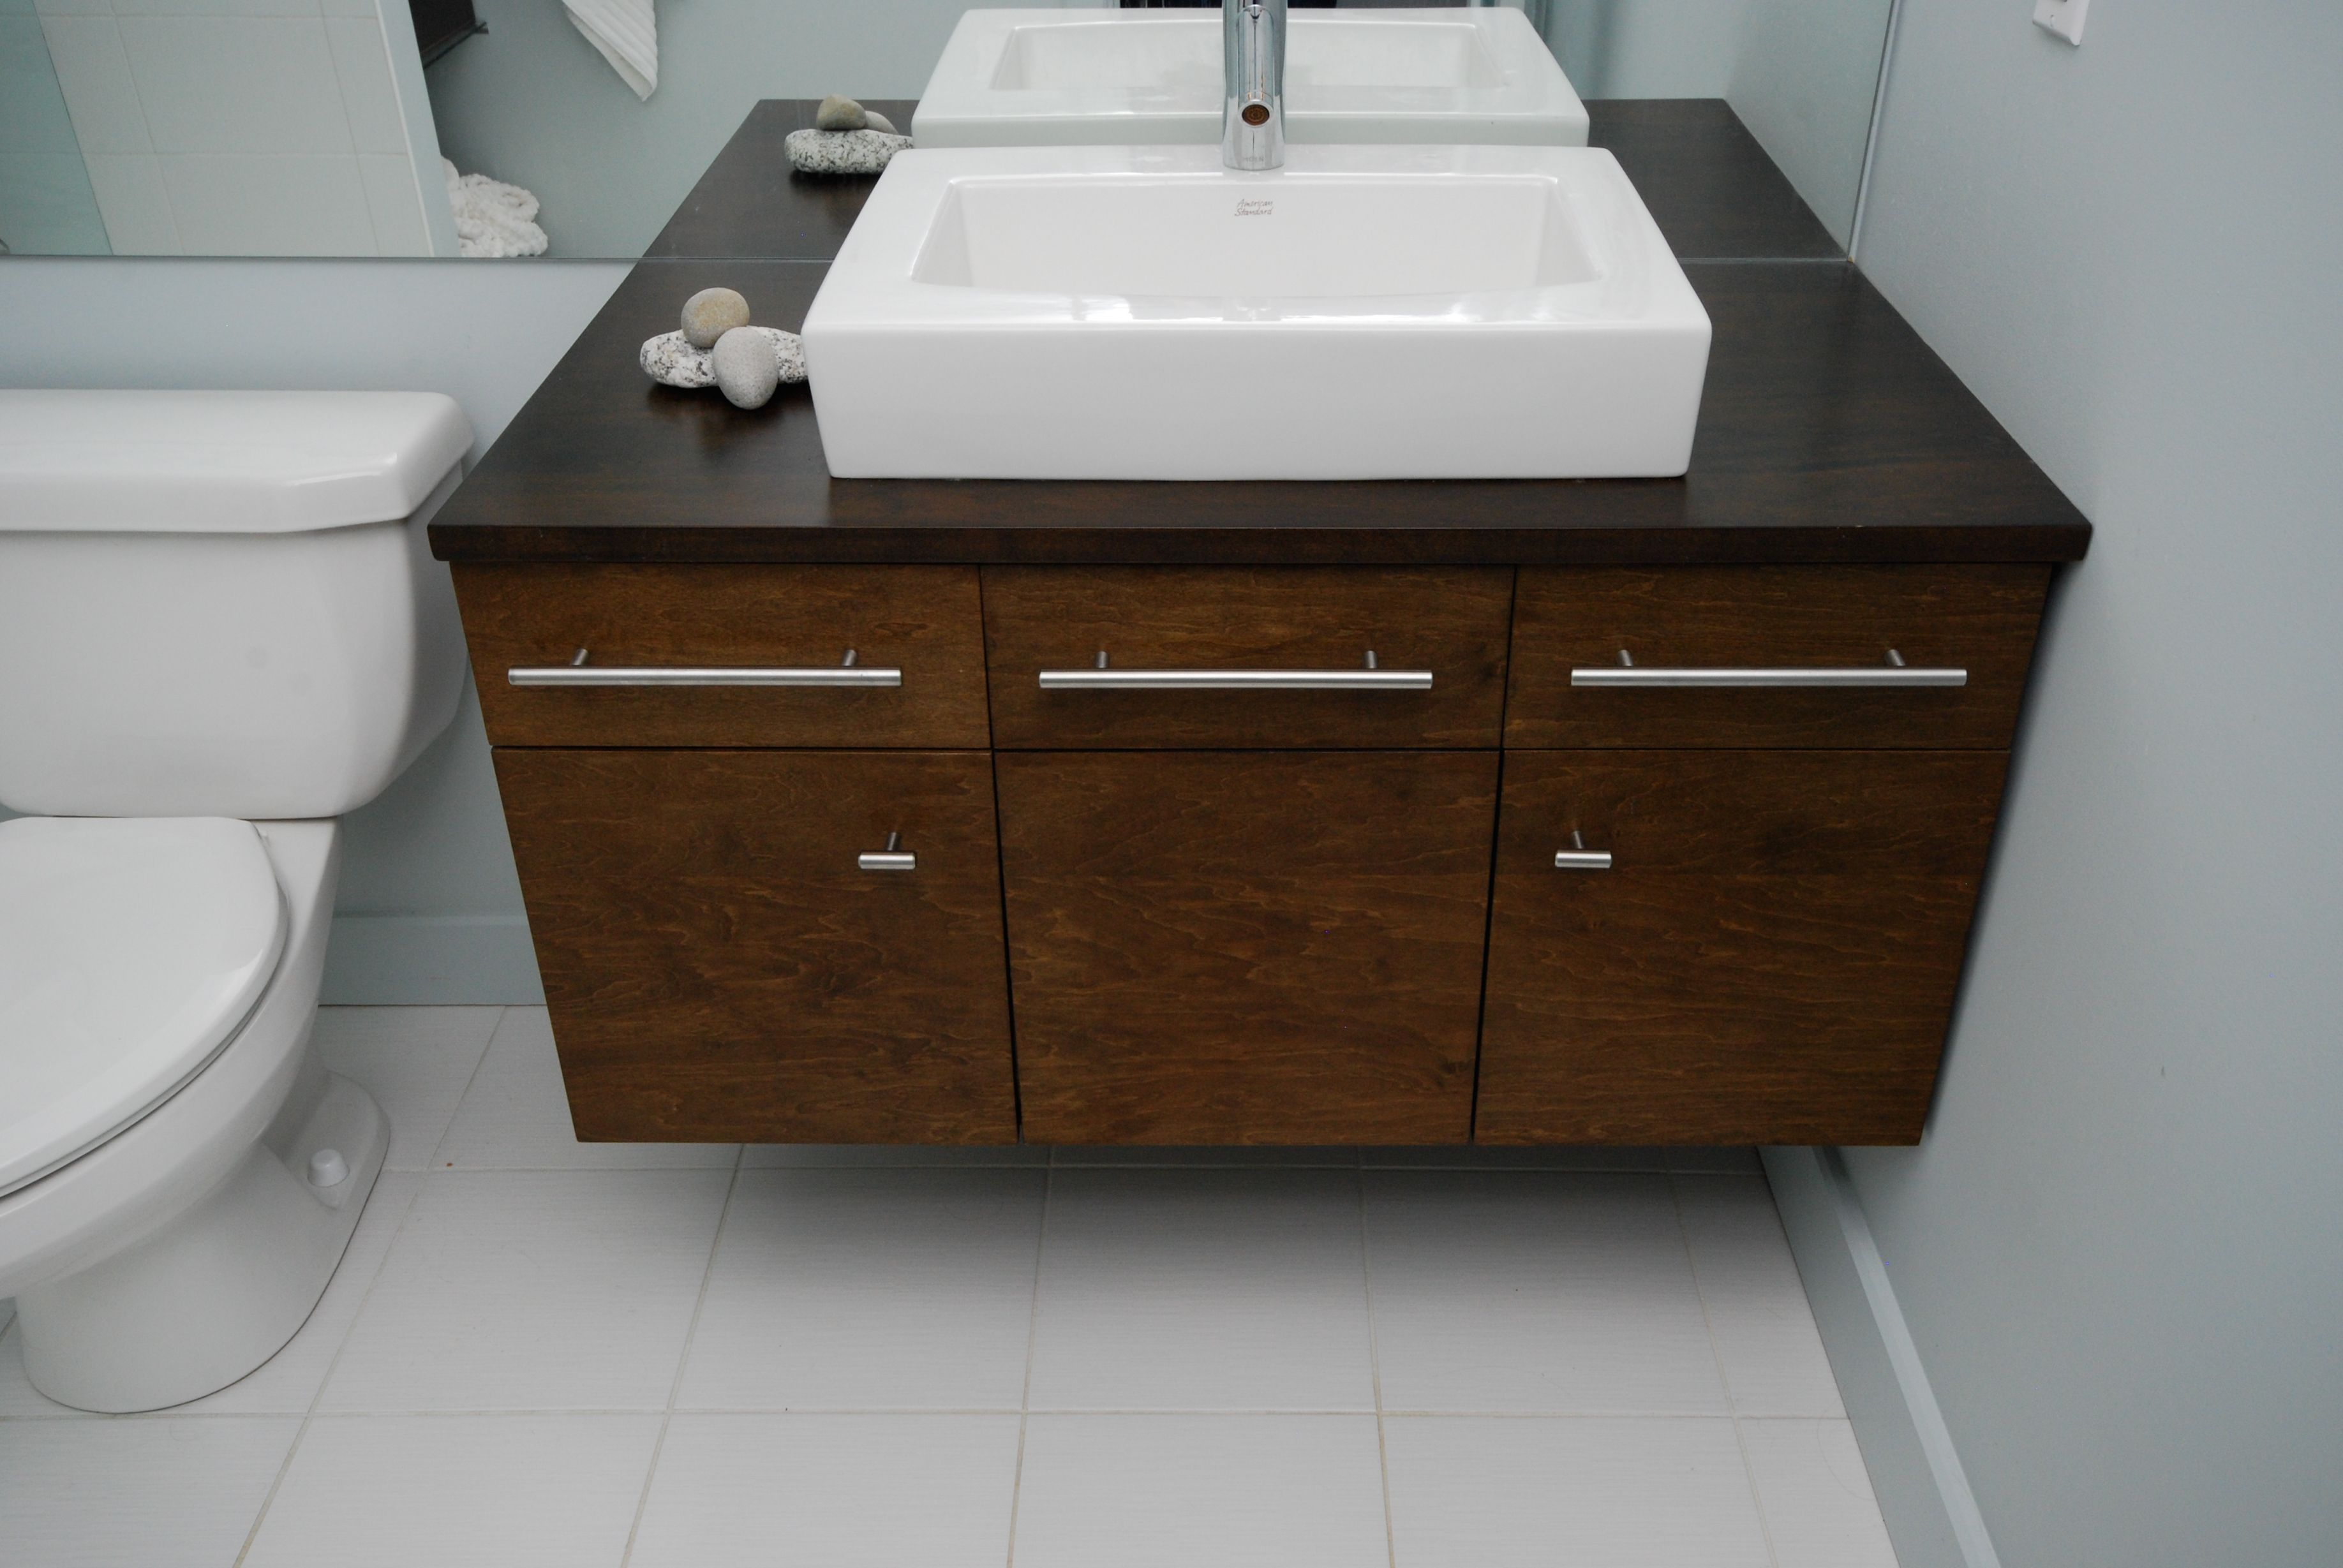 double sink vanity with granite top. Chic Modern Wooden Chocolate Floating Black Countertop Granite Cabinet Plus  White Undermount Sink And Chrome Faucet